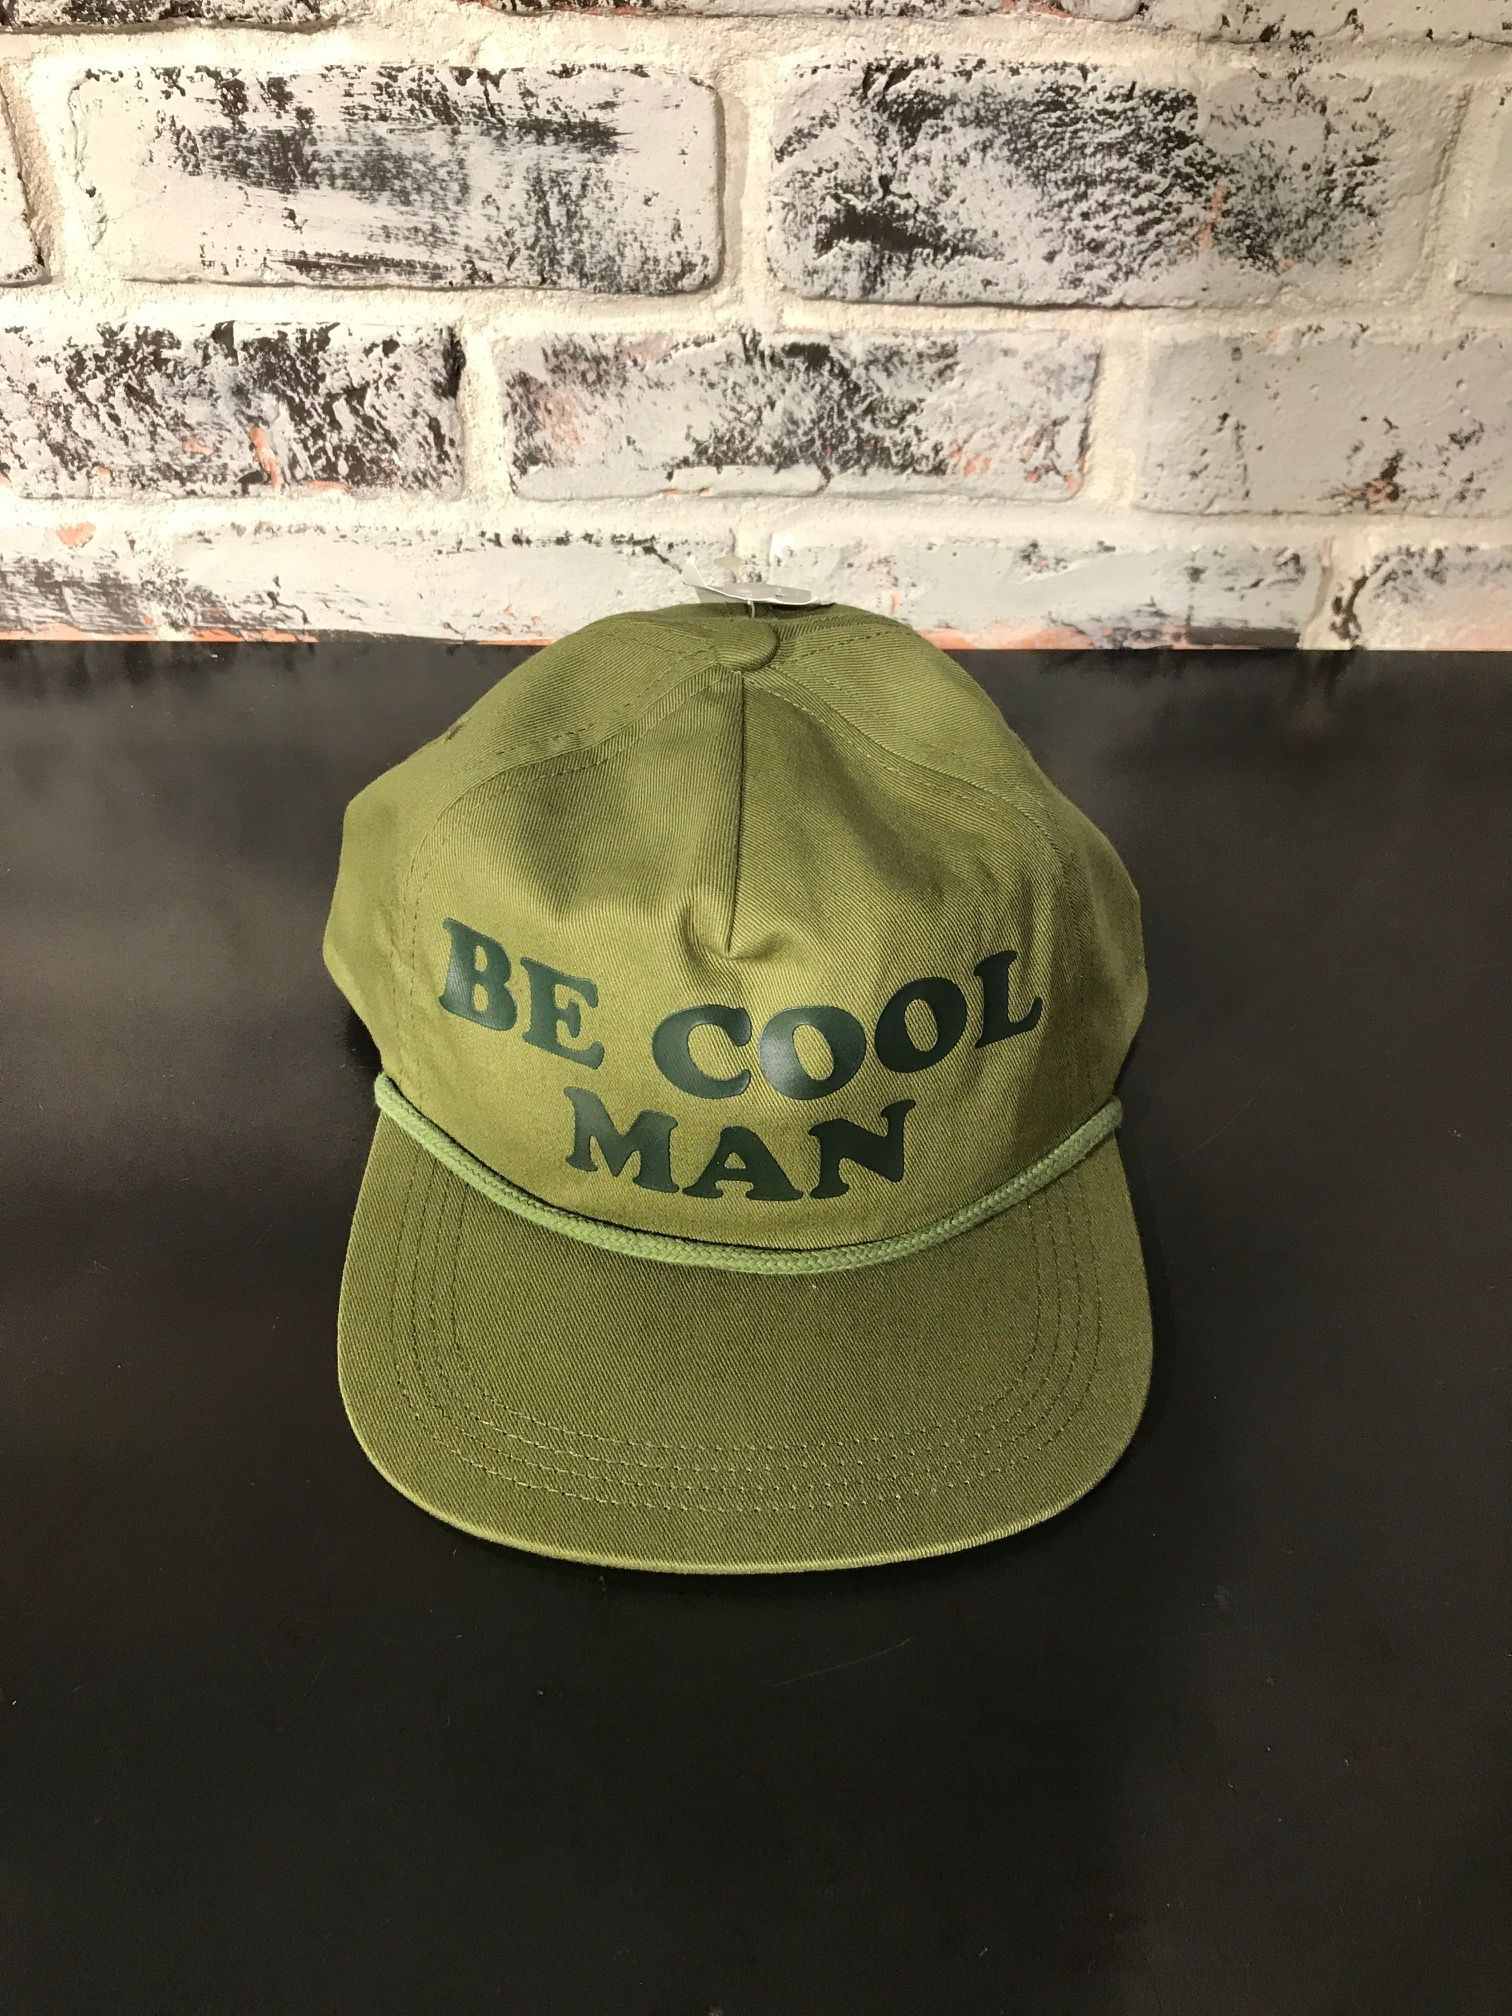 【L17A28】T/S × Captain Fin Be Cool Man Hat(通常価格:6372円)